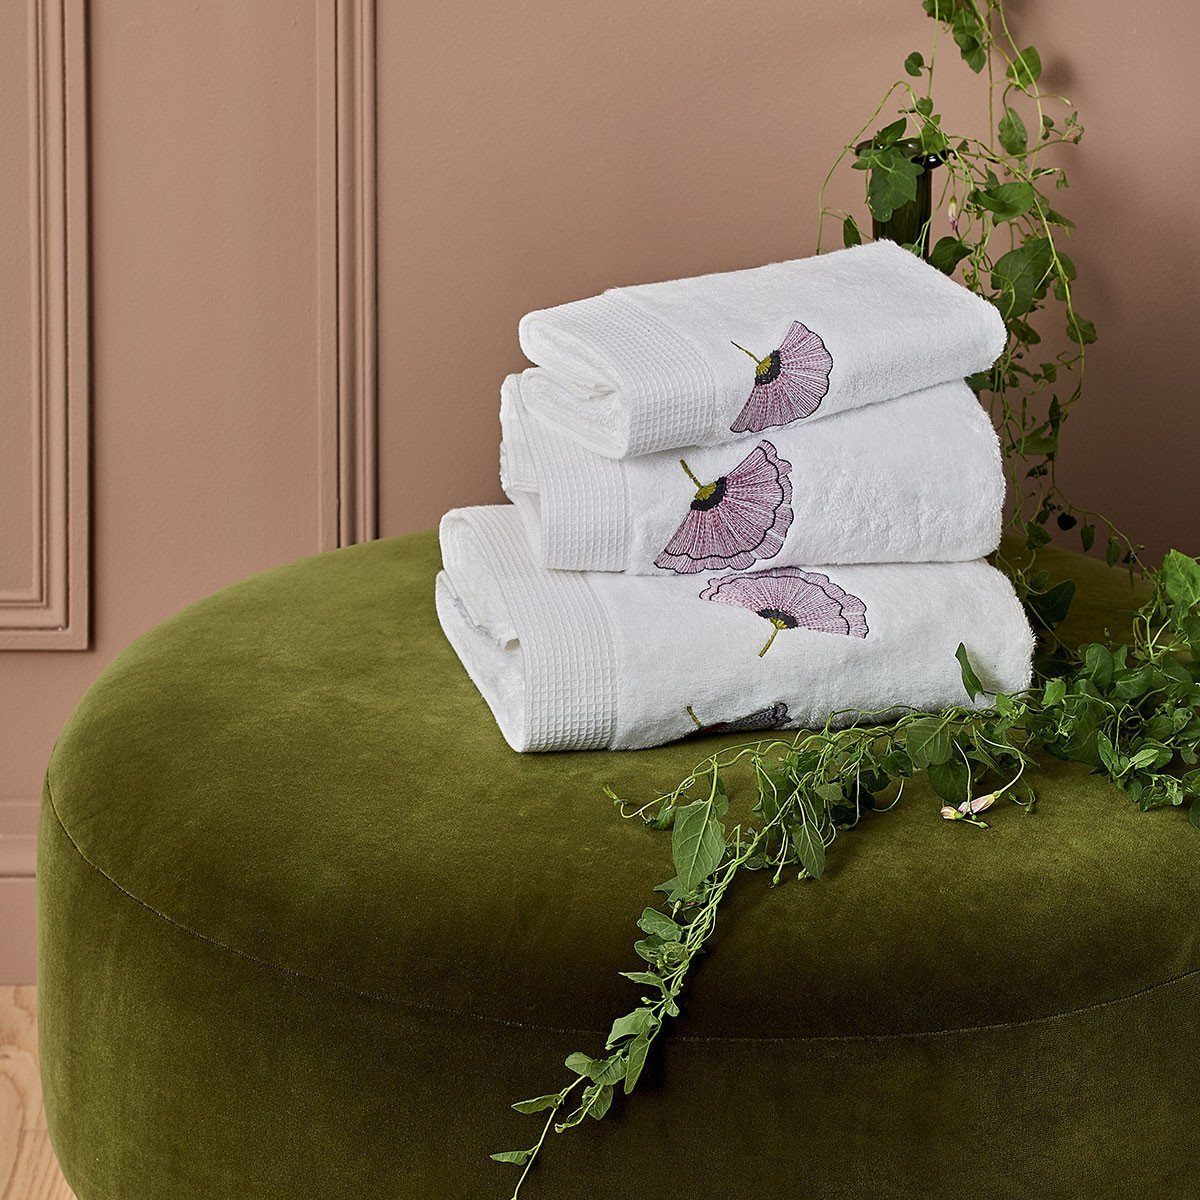 Epure Bath Towels by Yves Delorme